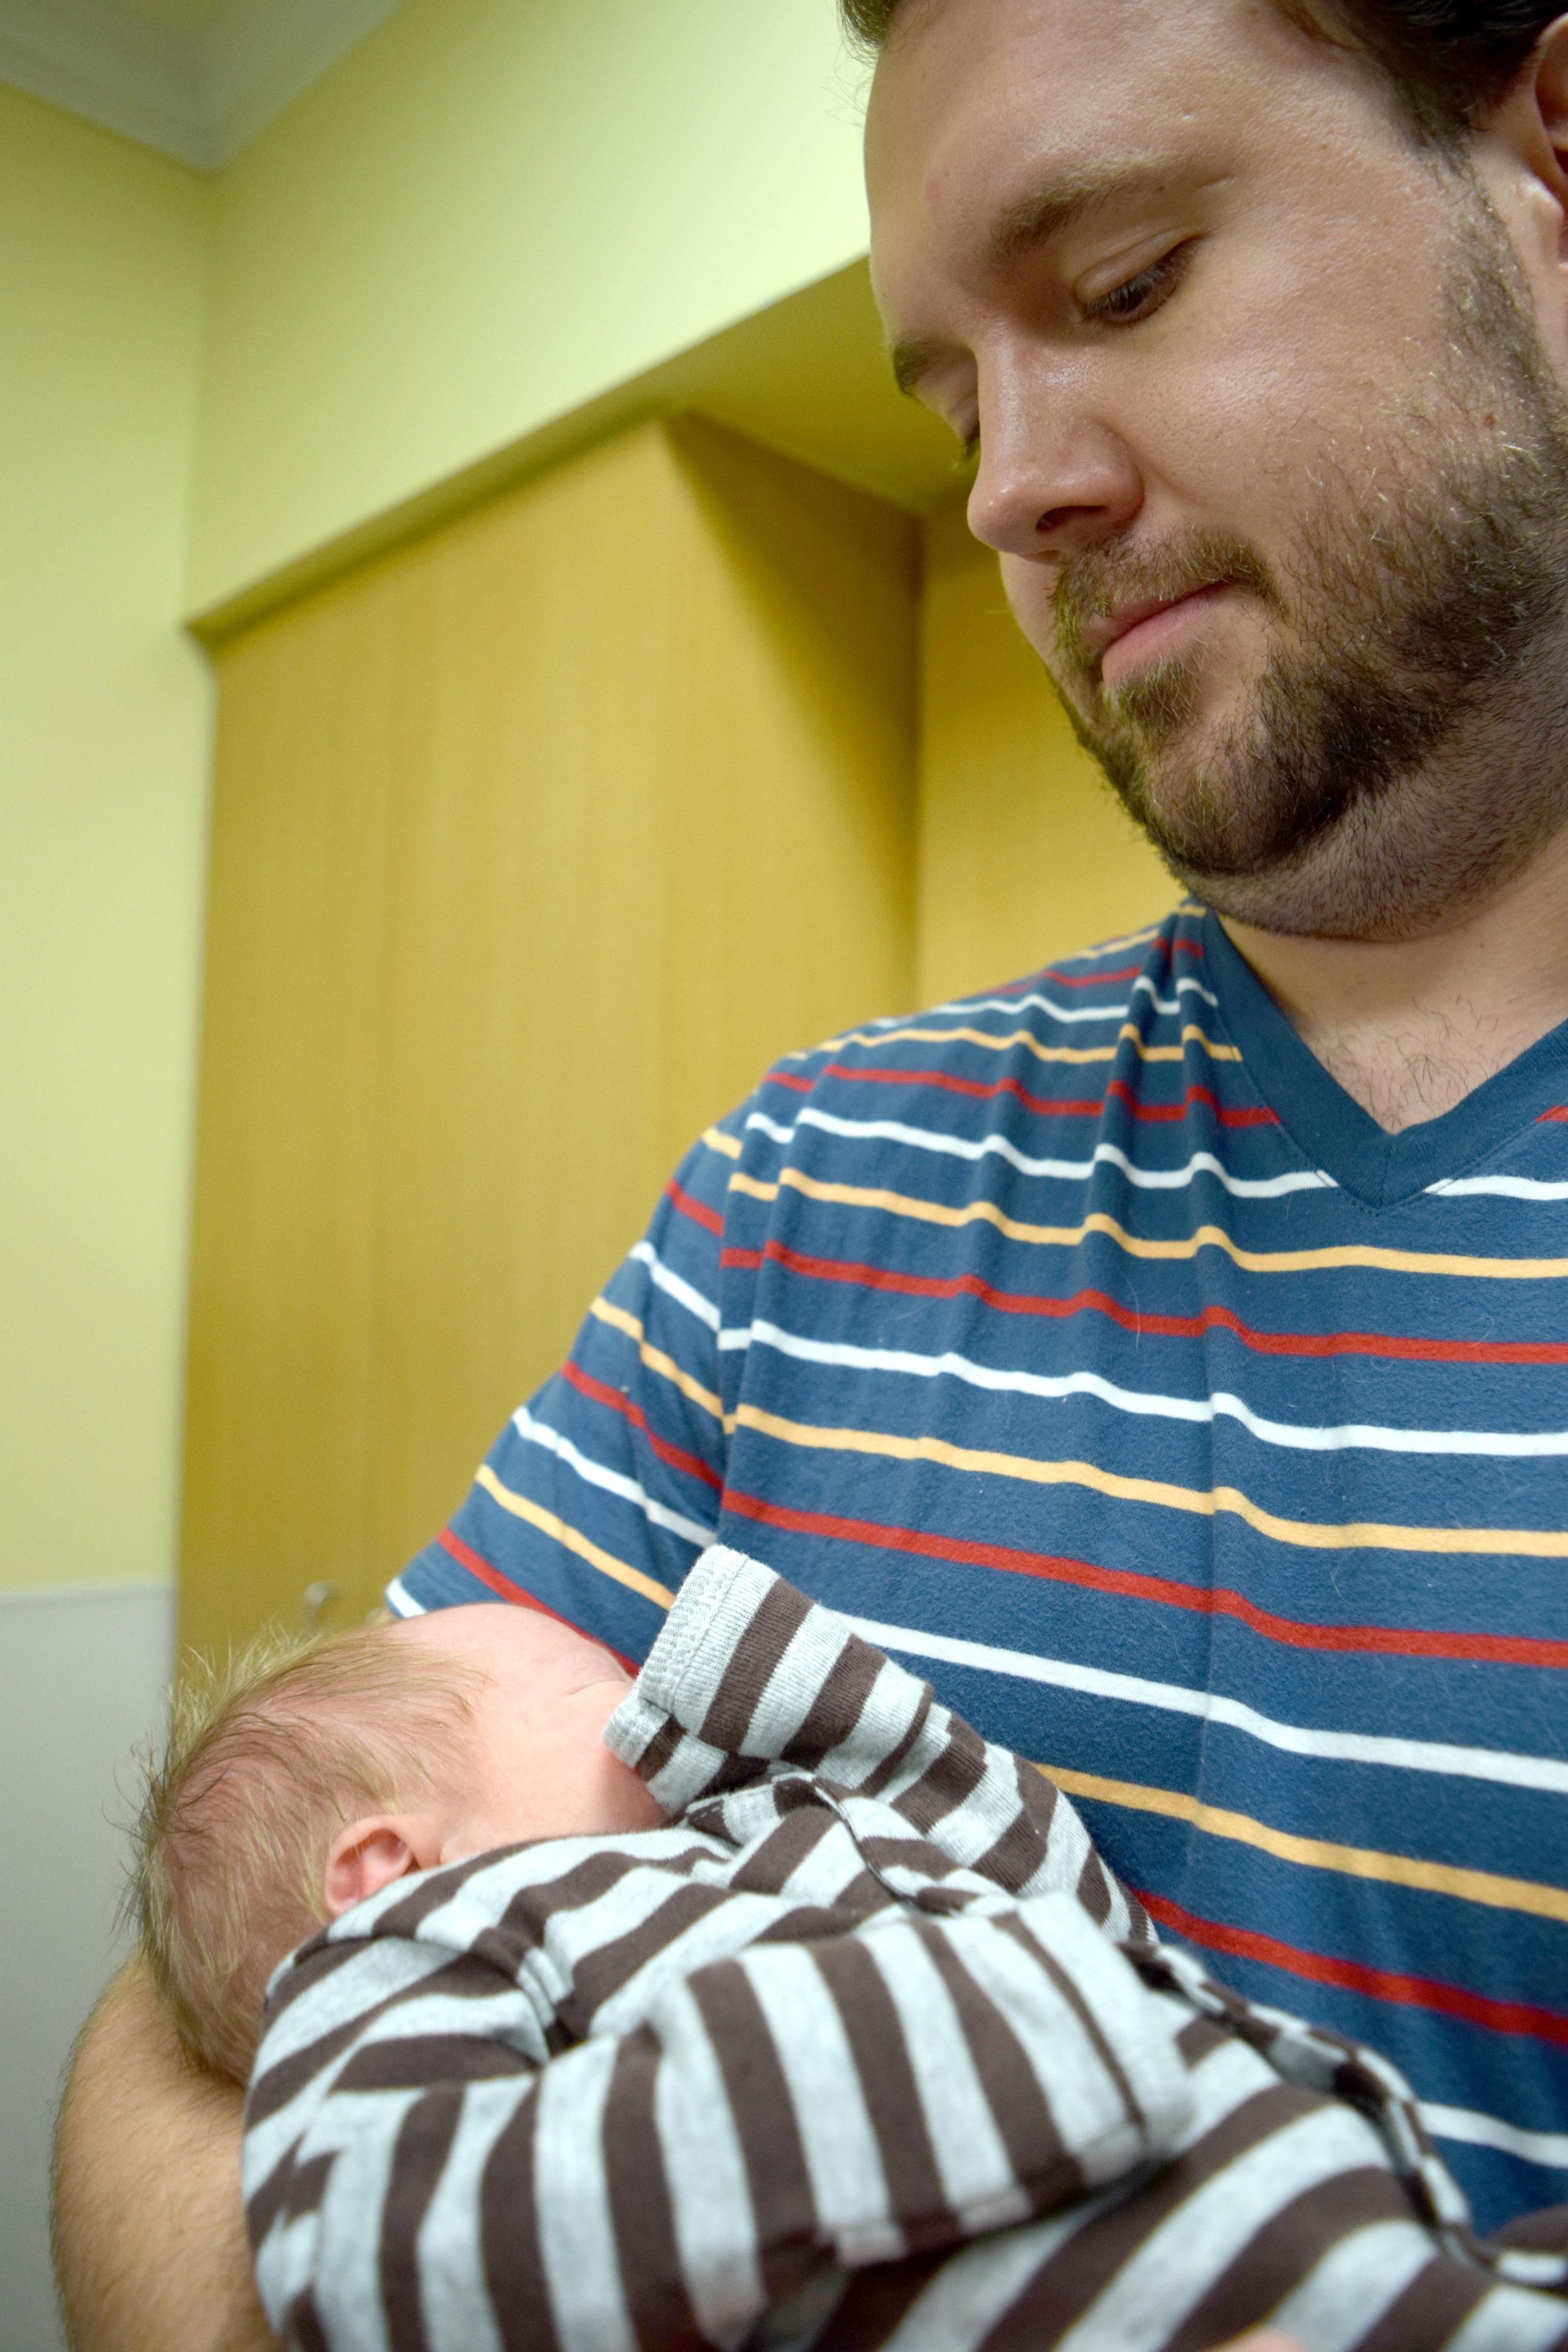 Holding our nephew for the first time at the hospital.